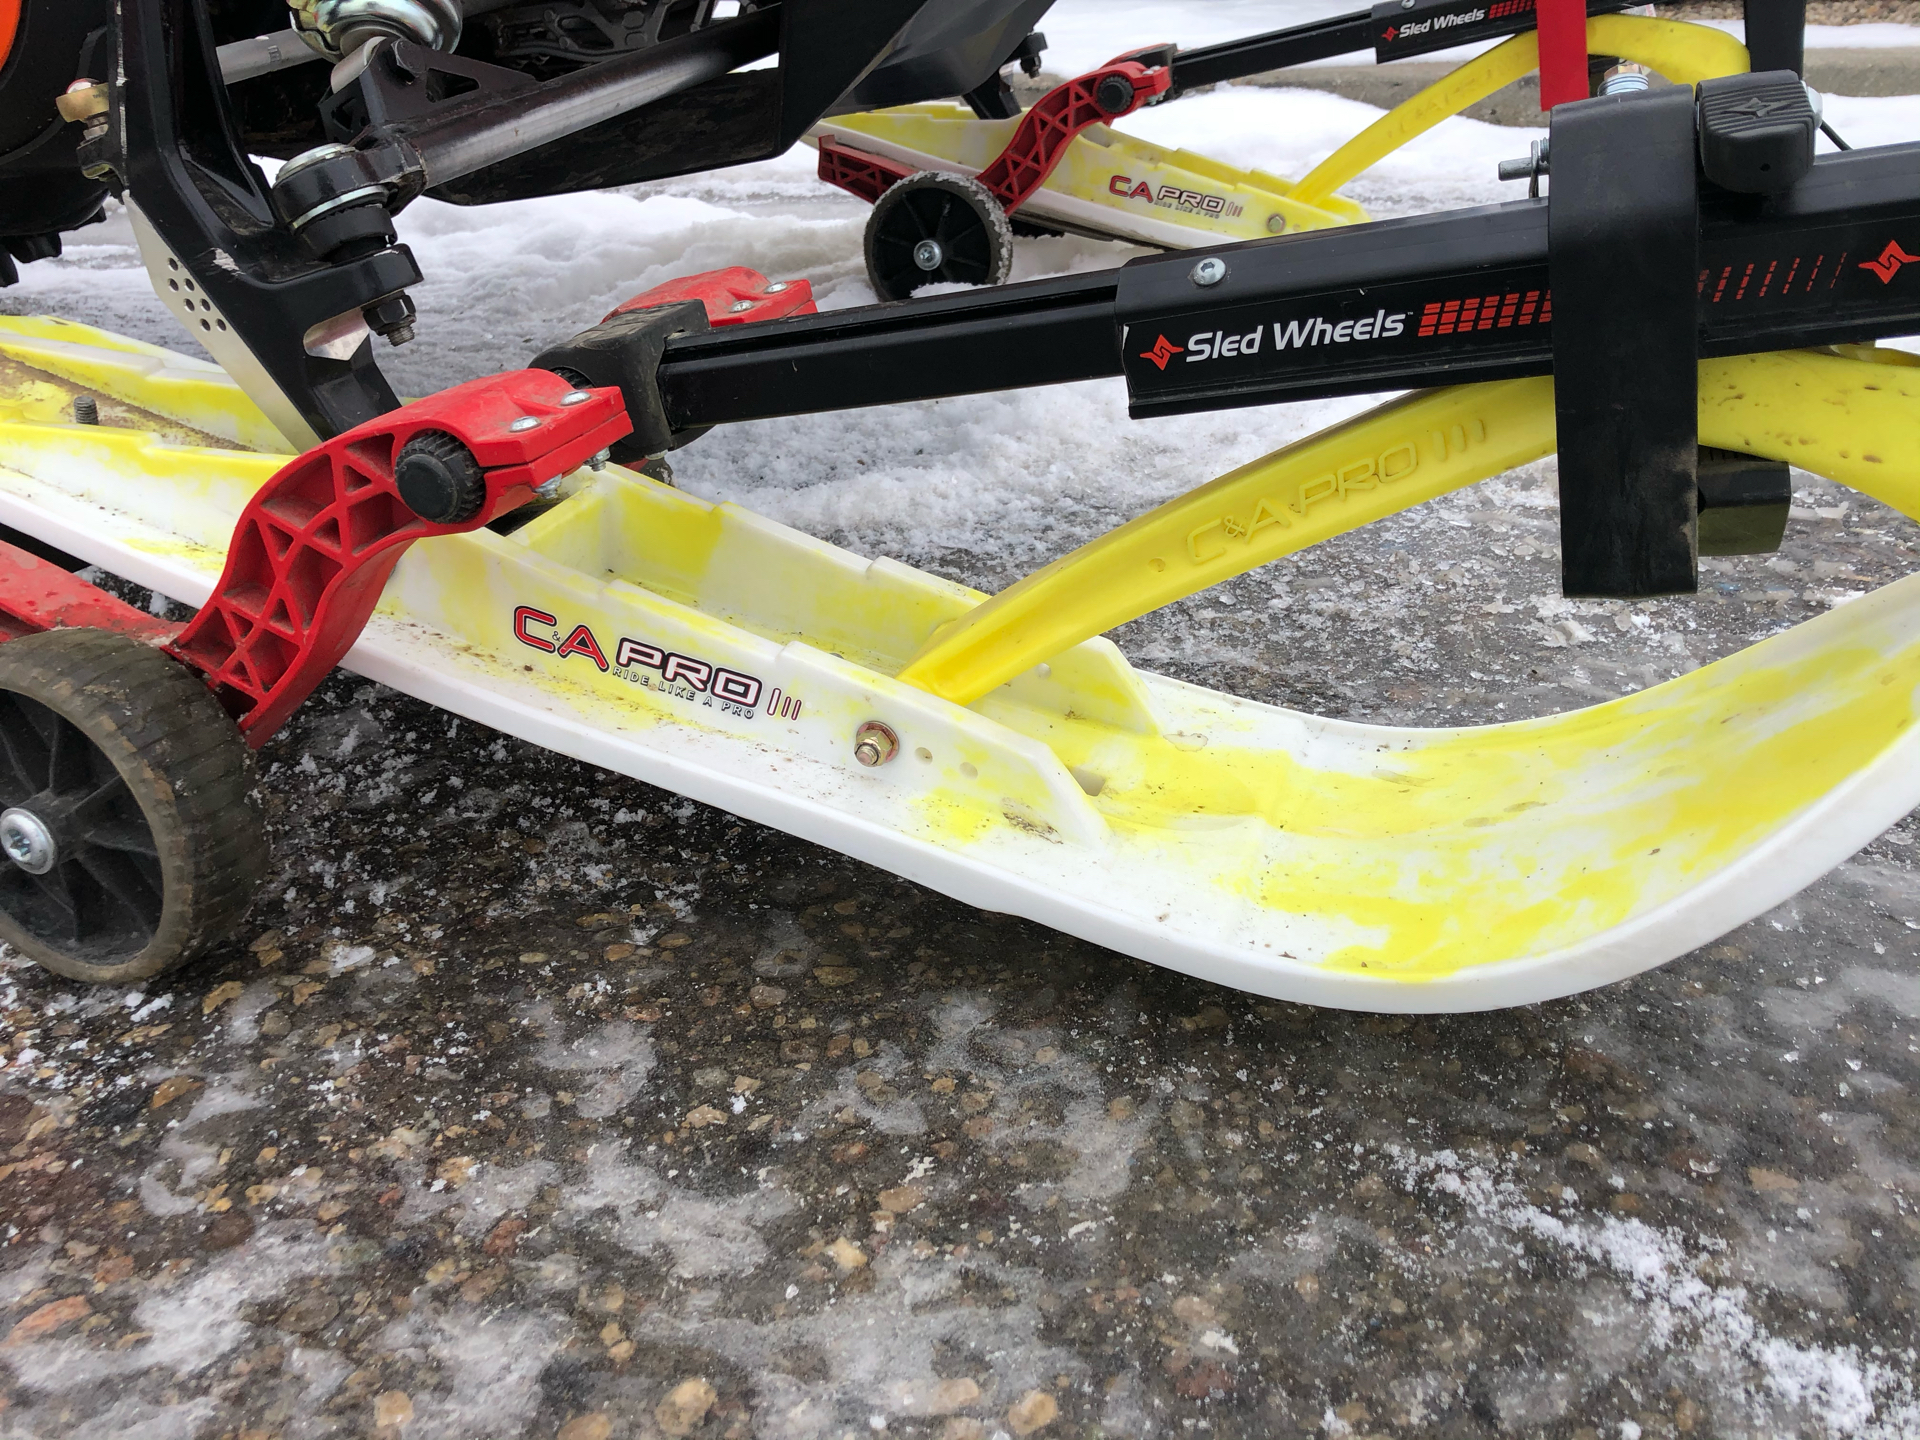 2016 Ski-Doo Renegade Backcountry 800R E-TEC in Bismarck, North Dakota - Photo 5